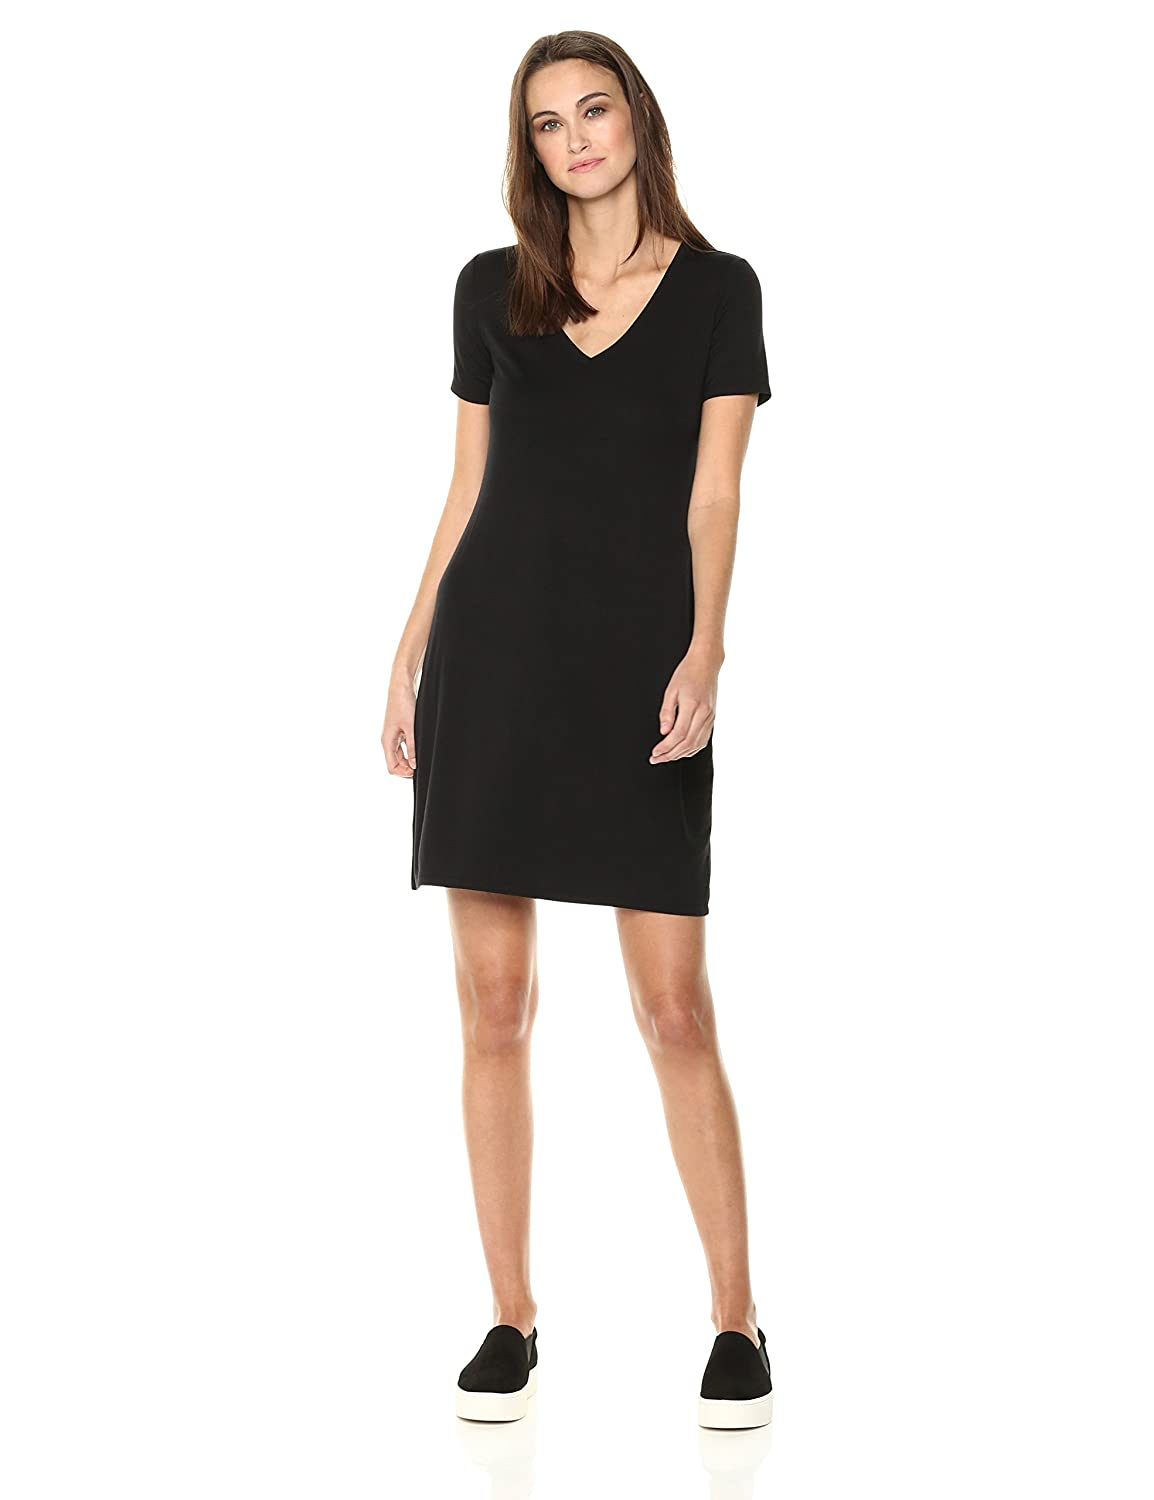 7c43147db61 Amazon.com  Daily Ritual Women s Jersey Short-Sleeve V-Neck T-Shirt Dress   Clothing